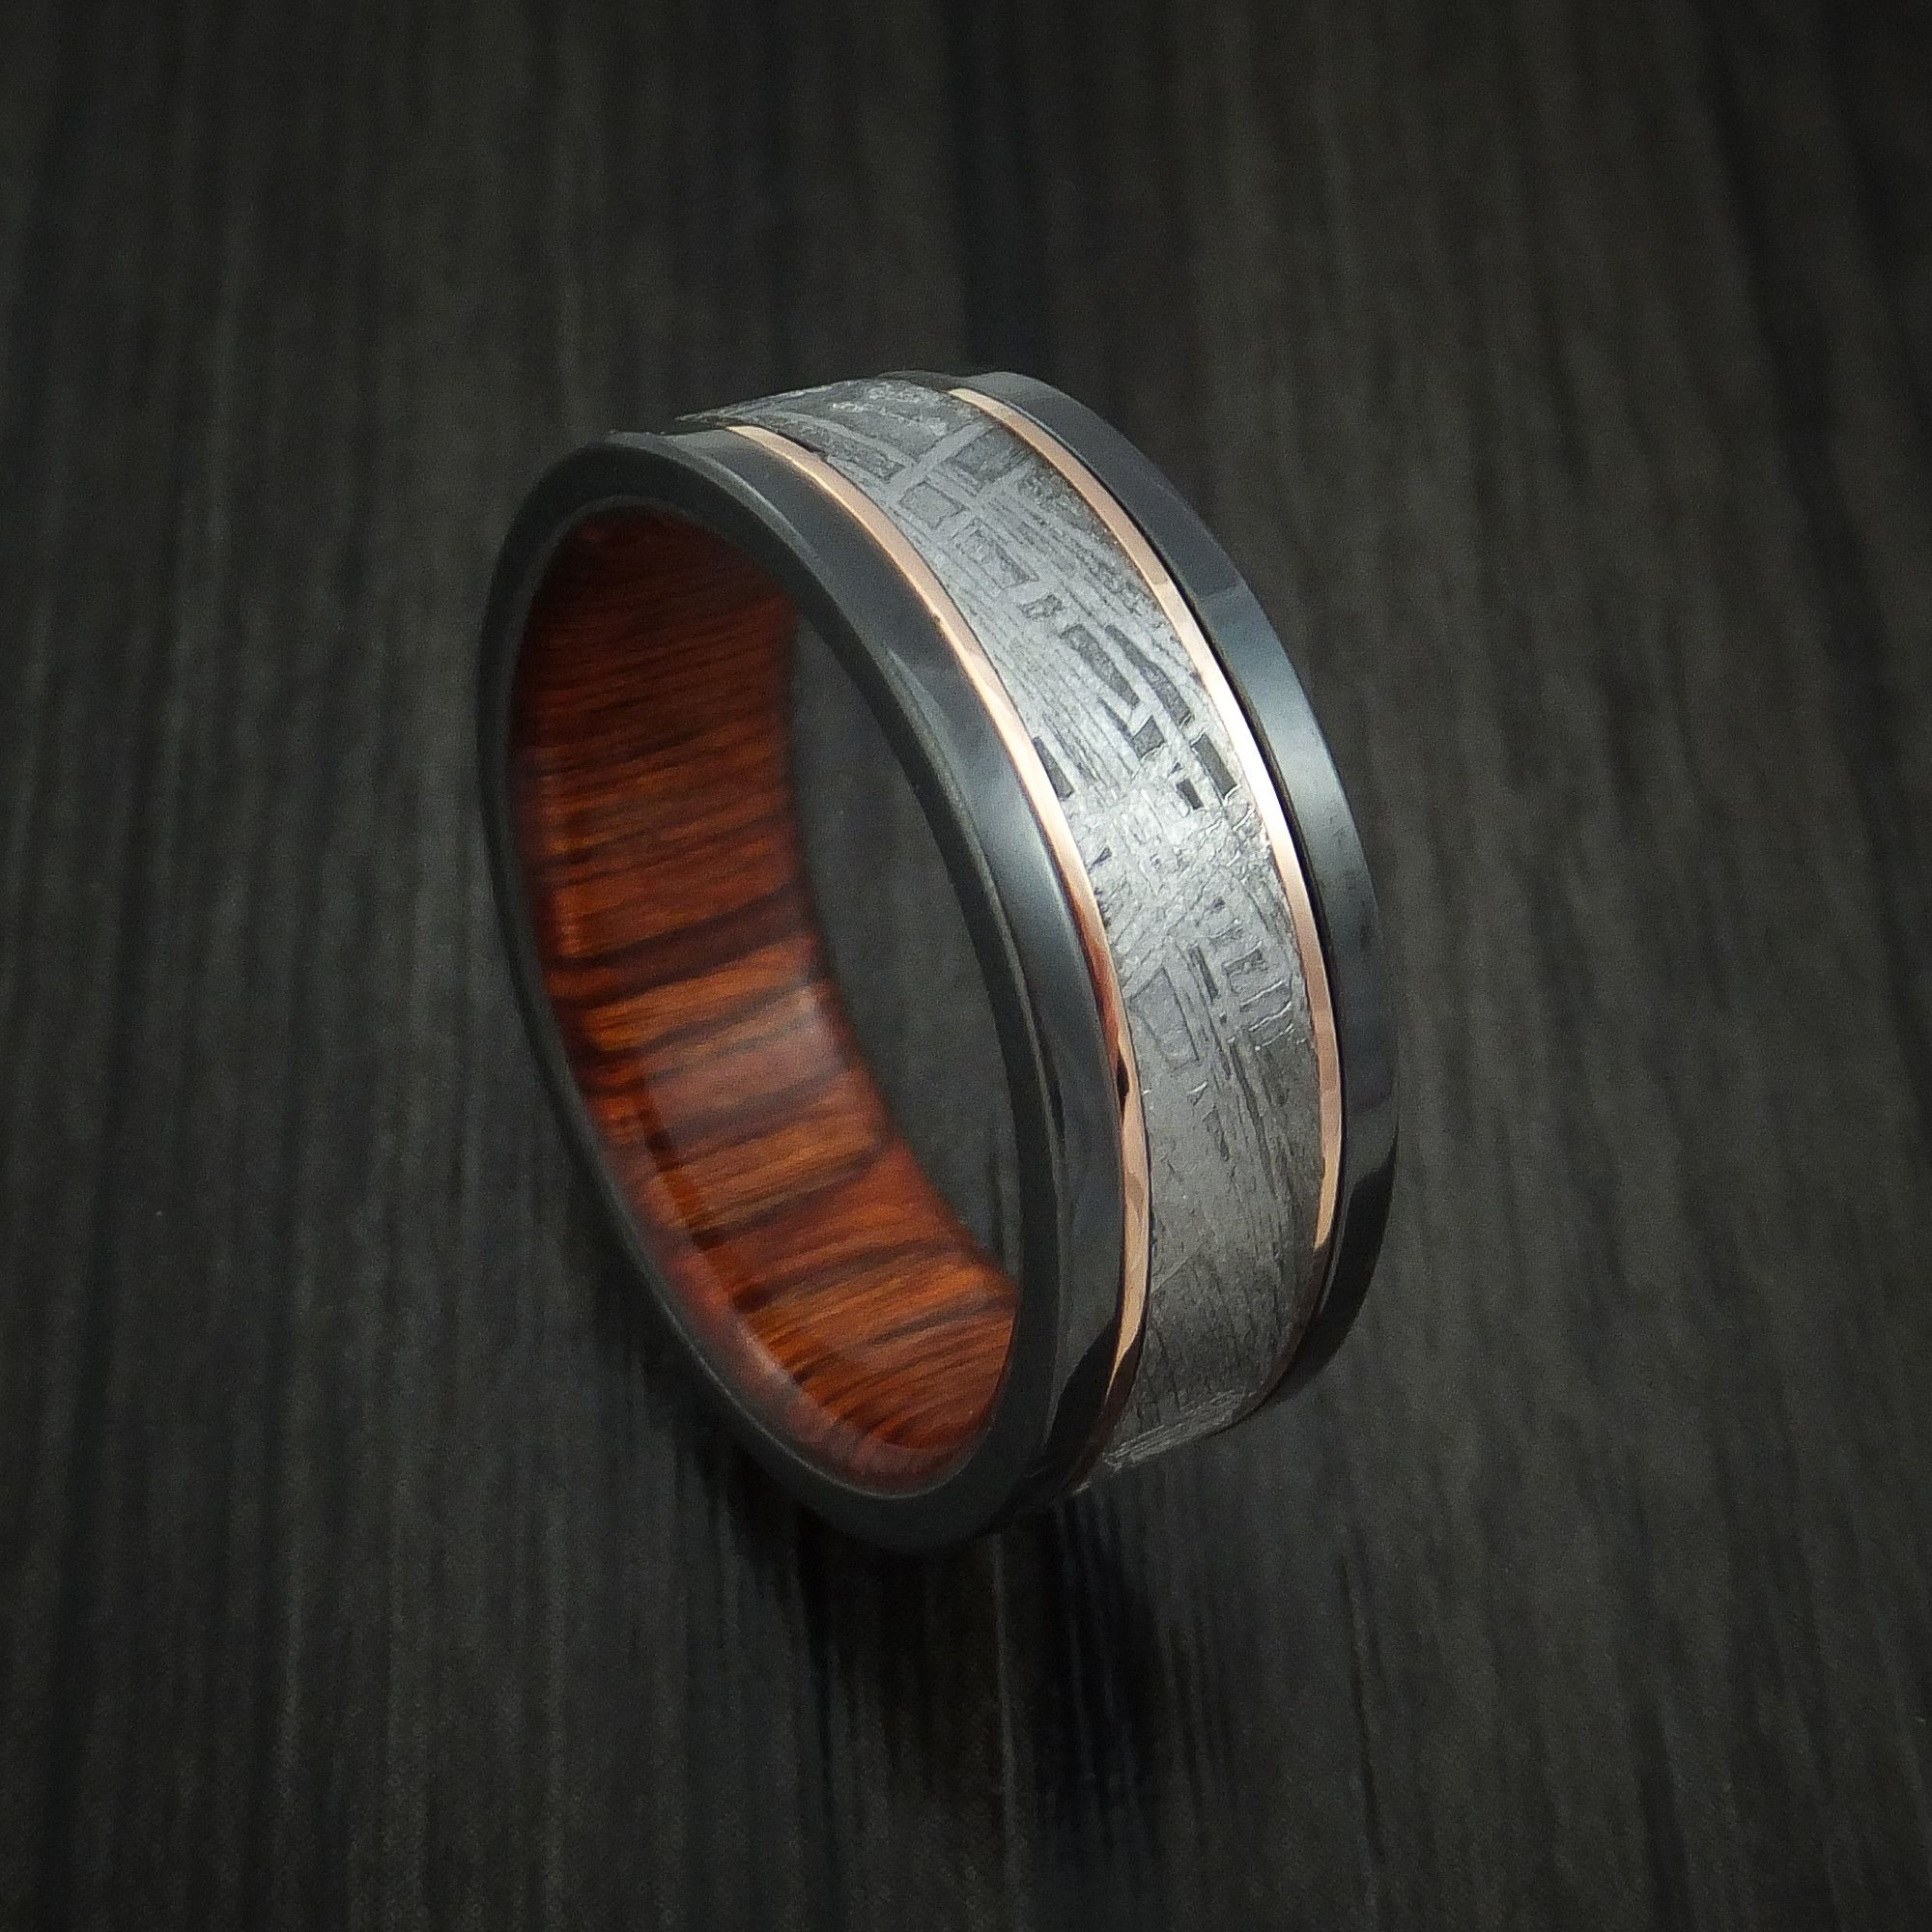 engagement darme ebony wedding inspirational rings petrified mens ring weddings engagements wood